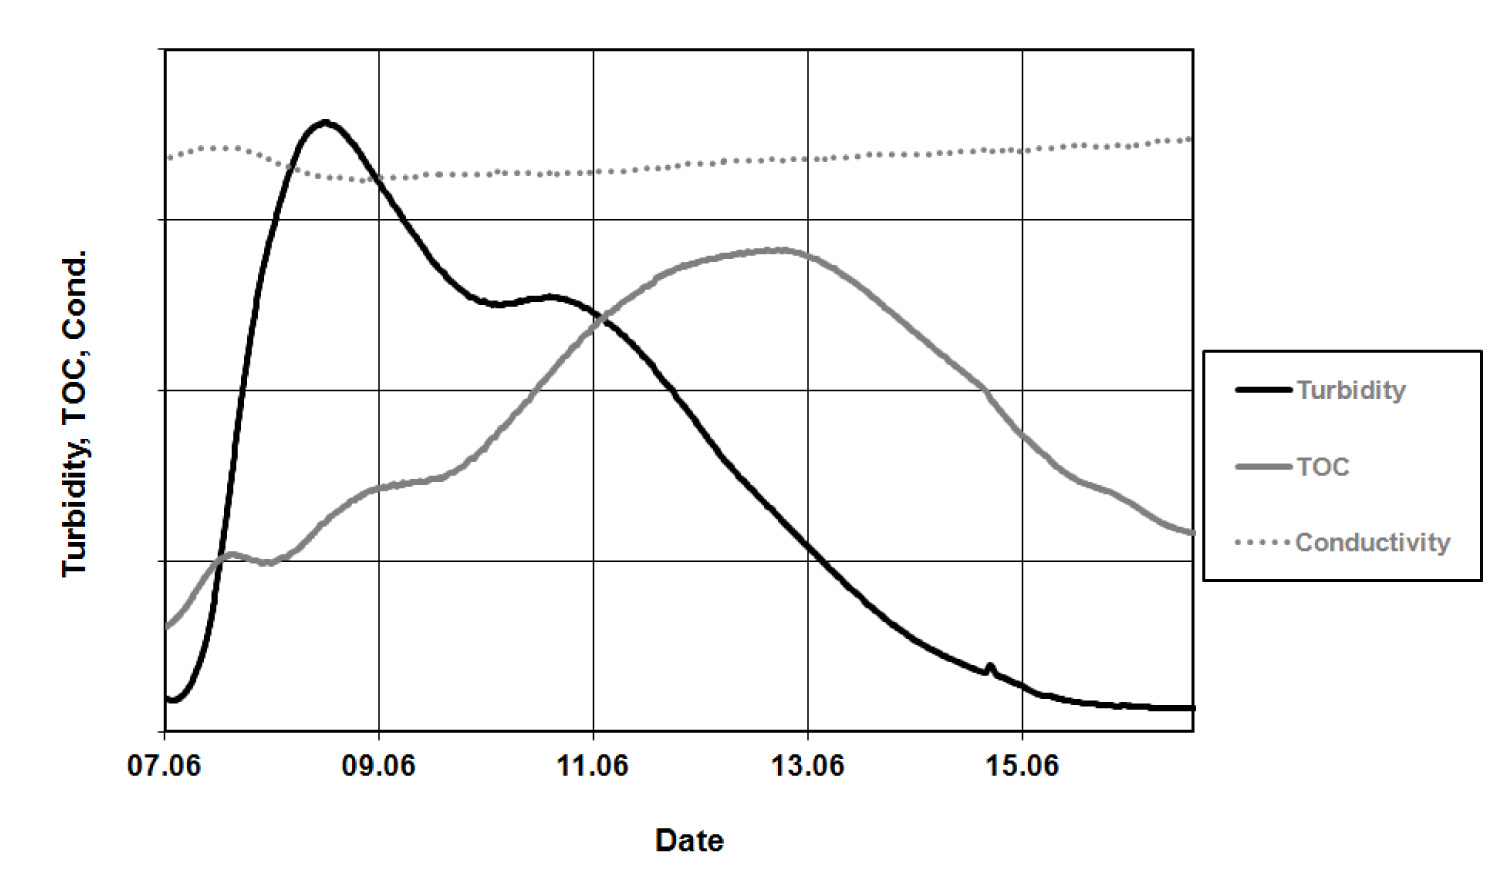 Effect of heavy rainfall on river water - elevated turbidity if followed by elevated TOC